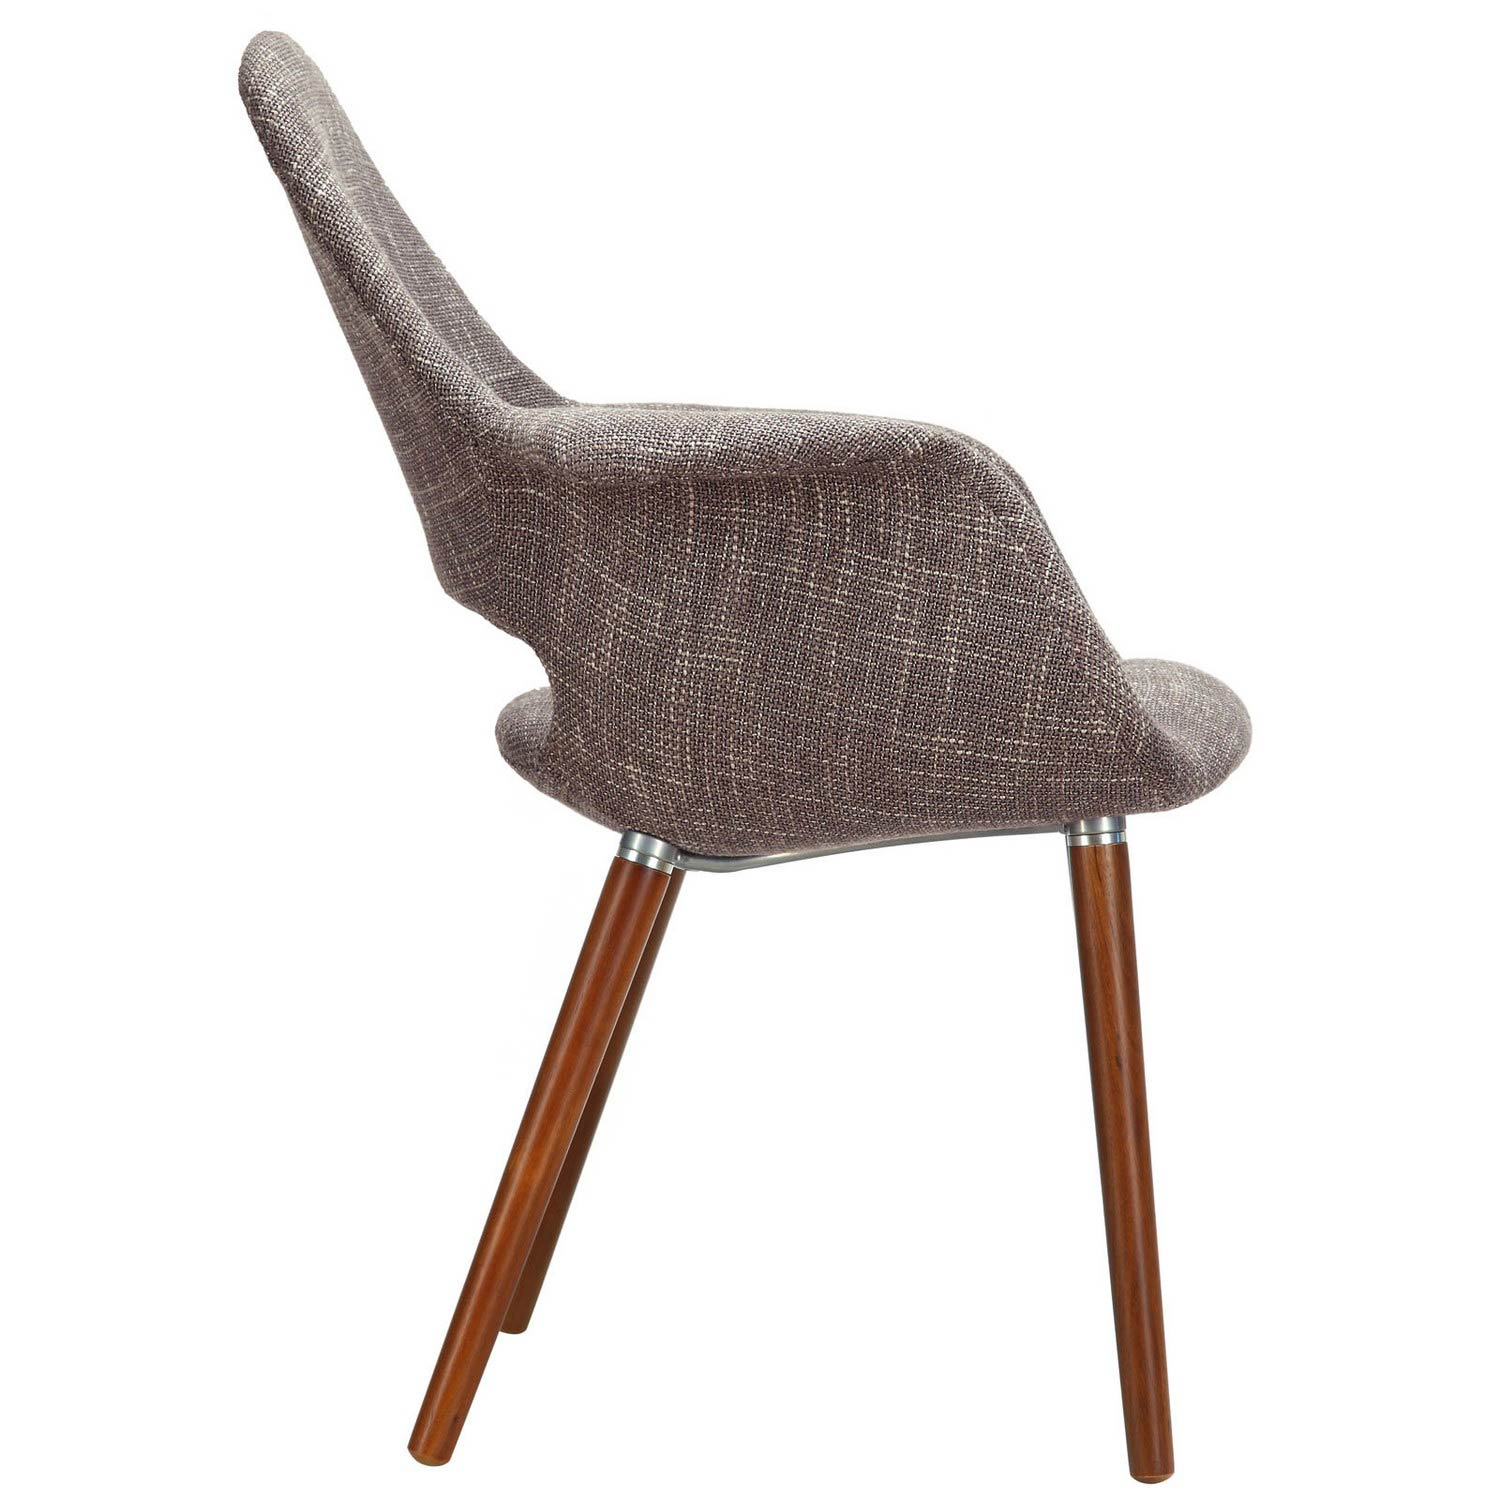 Modway Aegis Dining Armchair - Taupe